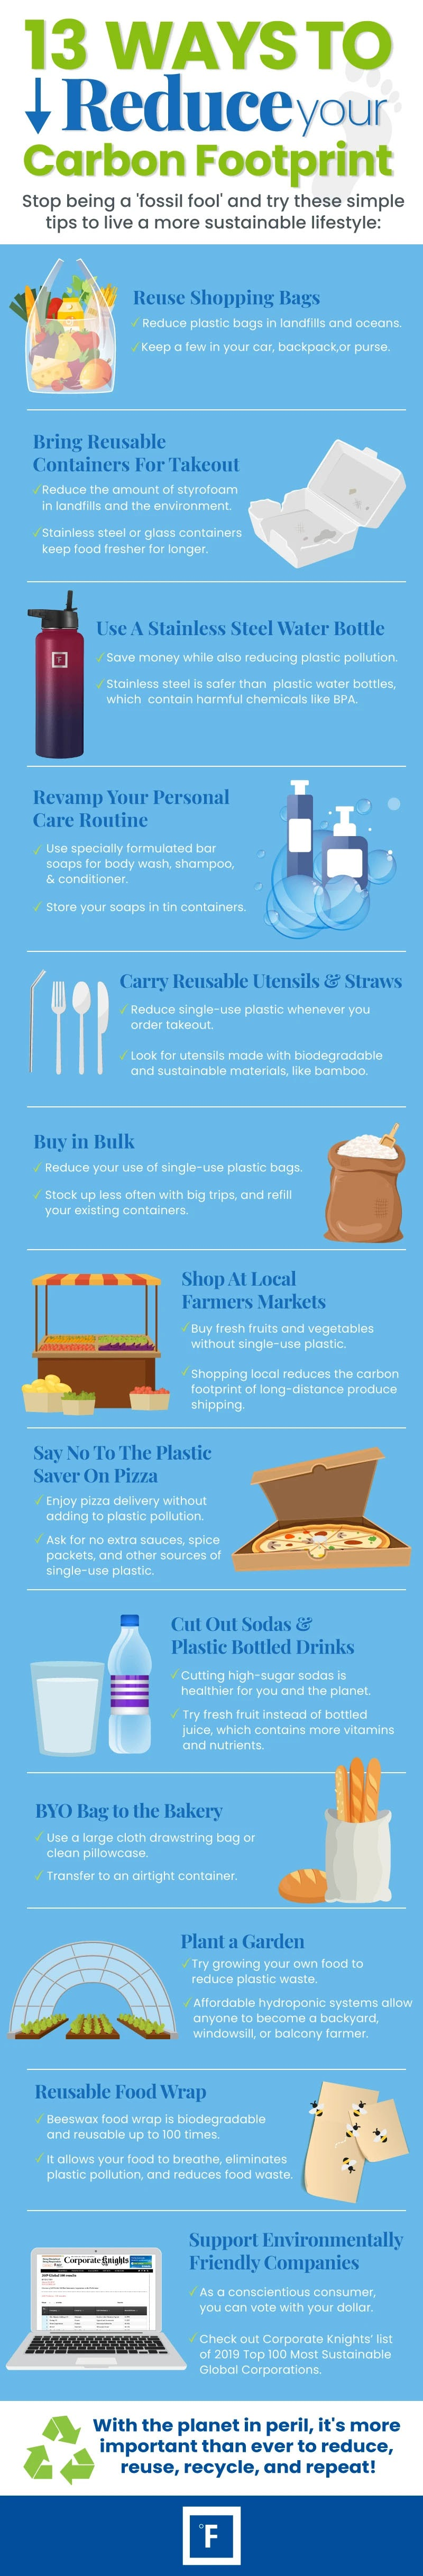 13 Ways To Reduce Your Carbon Footprint #infographic #Life Style #Environment